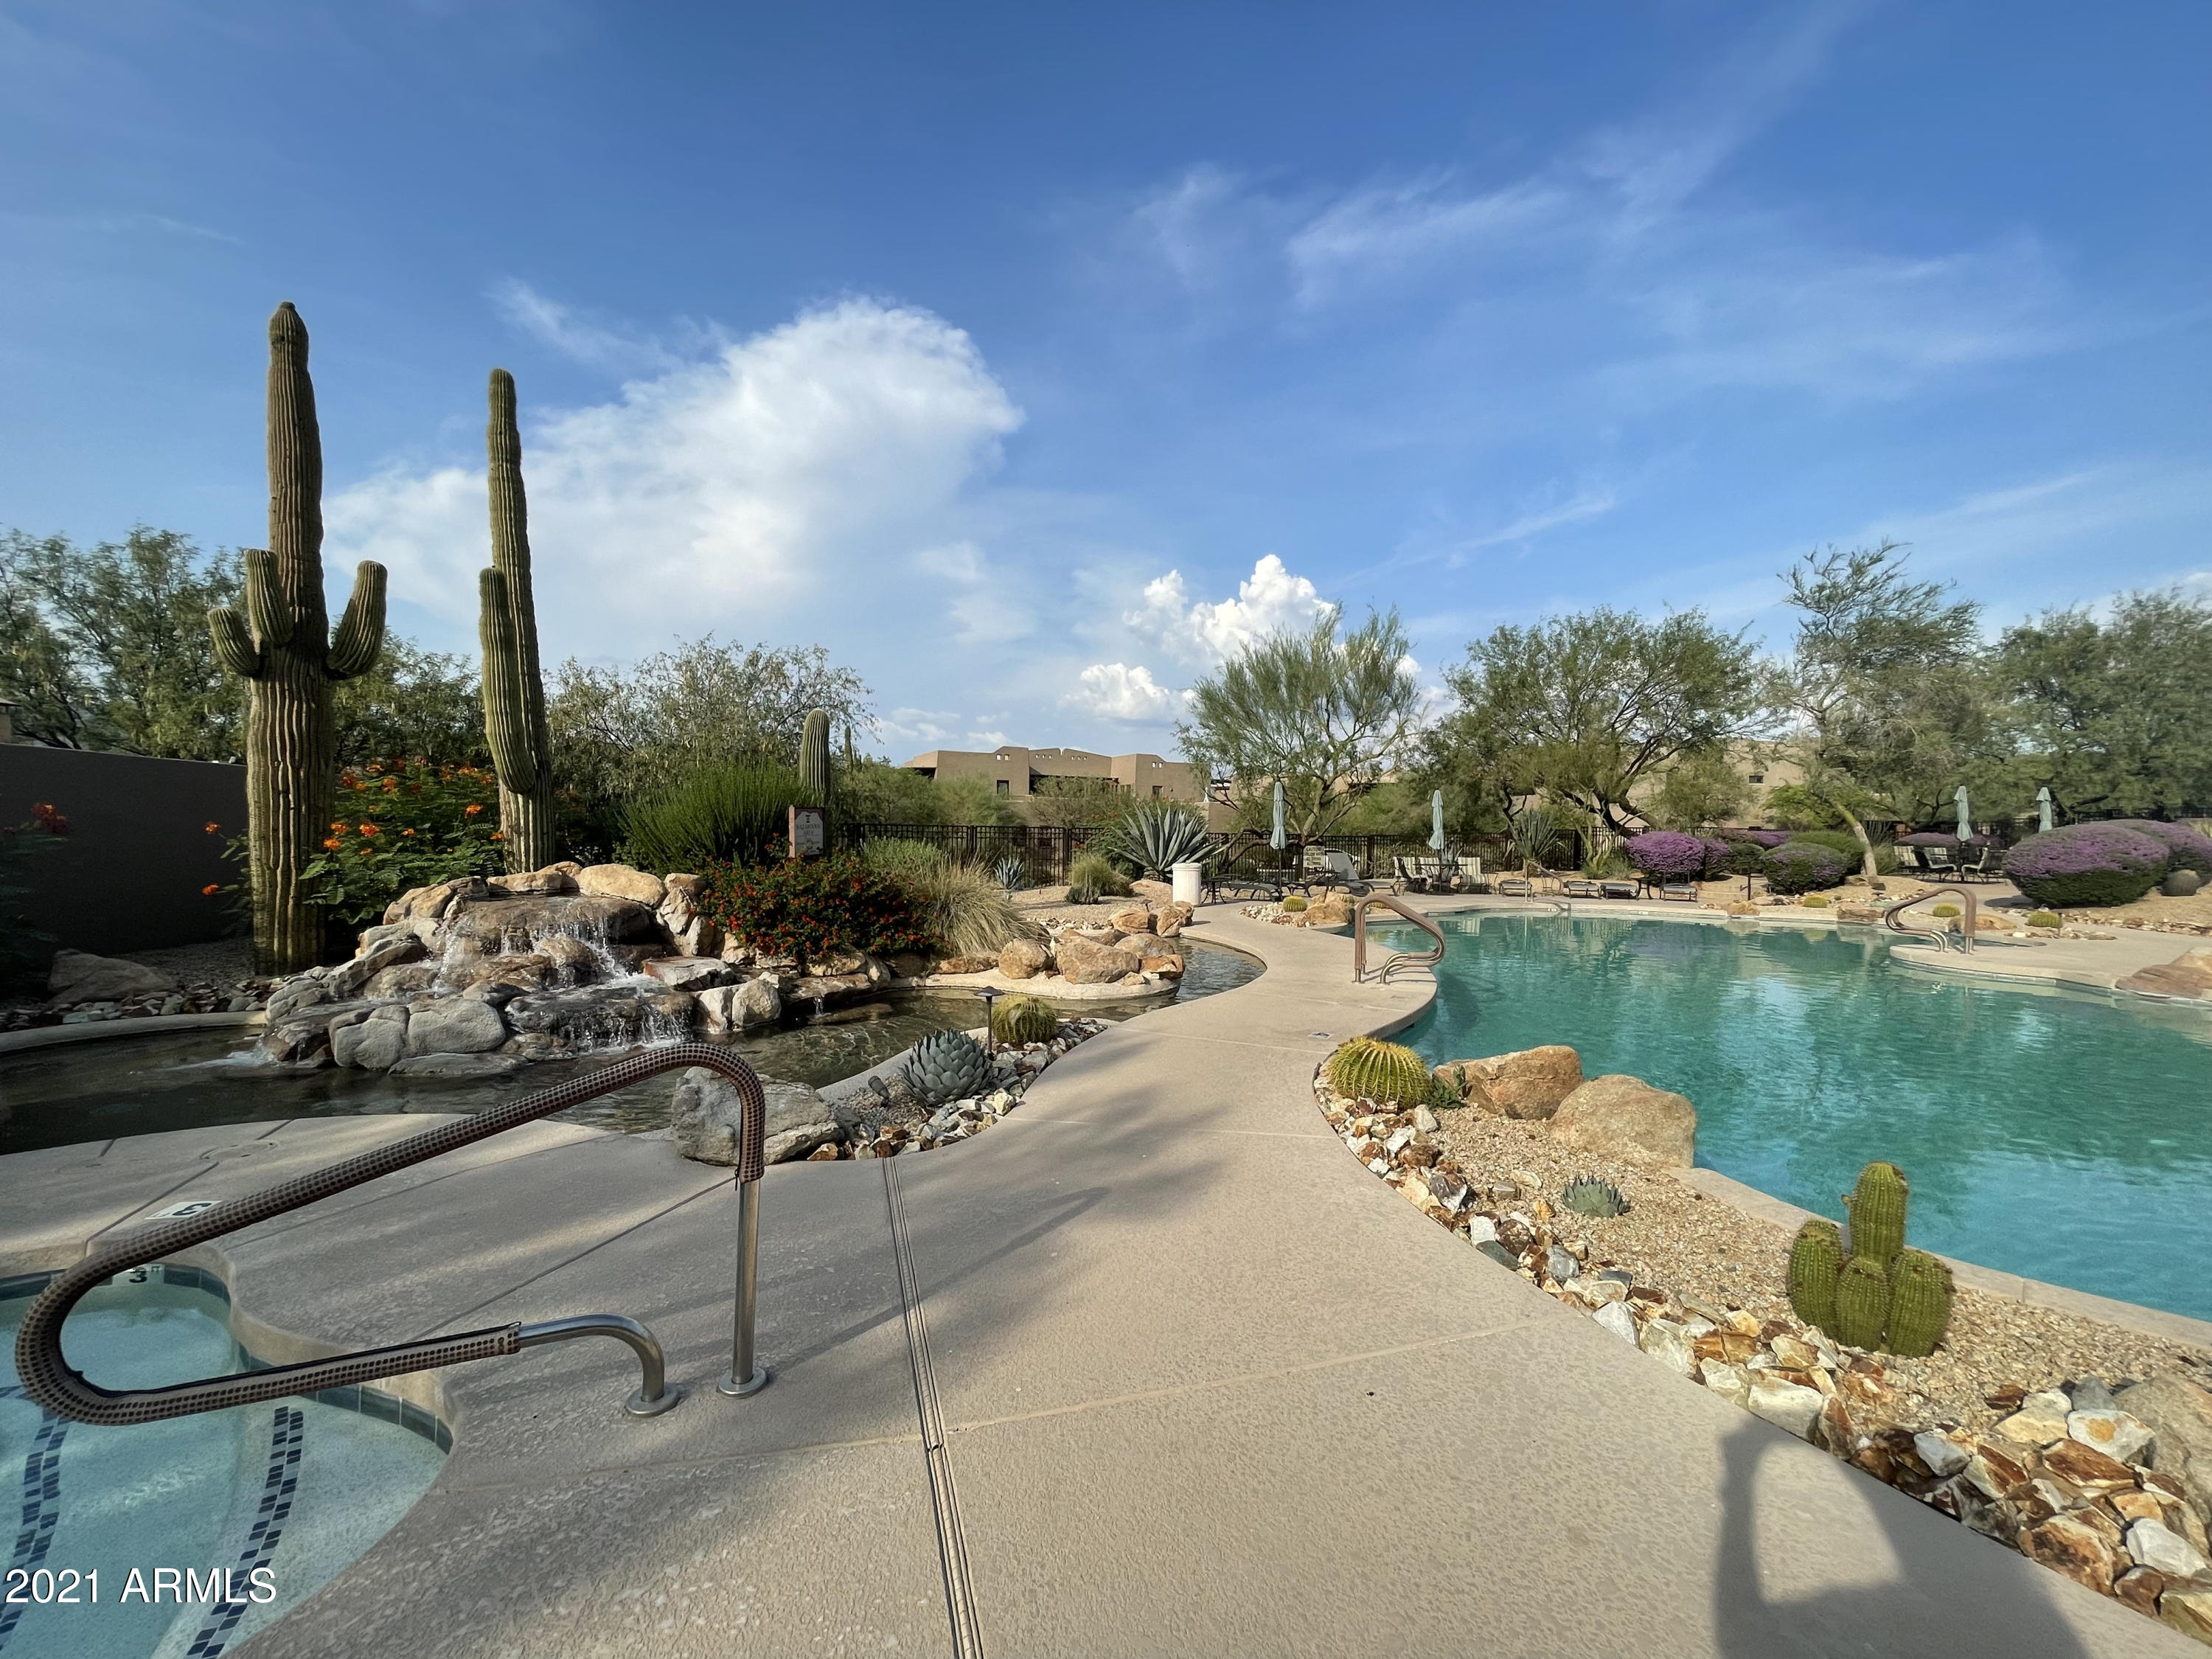 MLS 6267386 36601 N MULE TRAIN Road Unit A41 Building 41, Carefree, AZ 85377 Carefree AZ Condo or Townhome